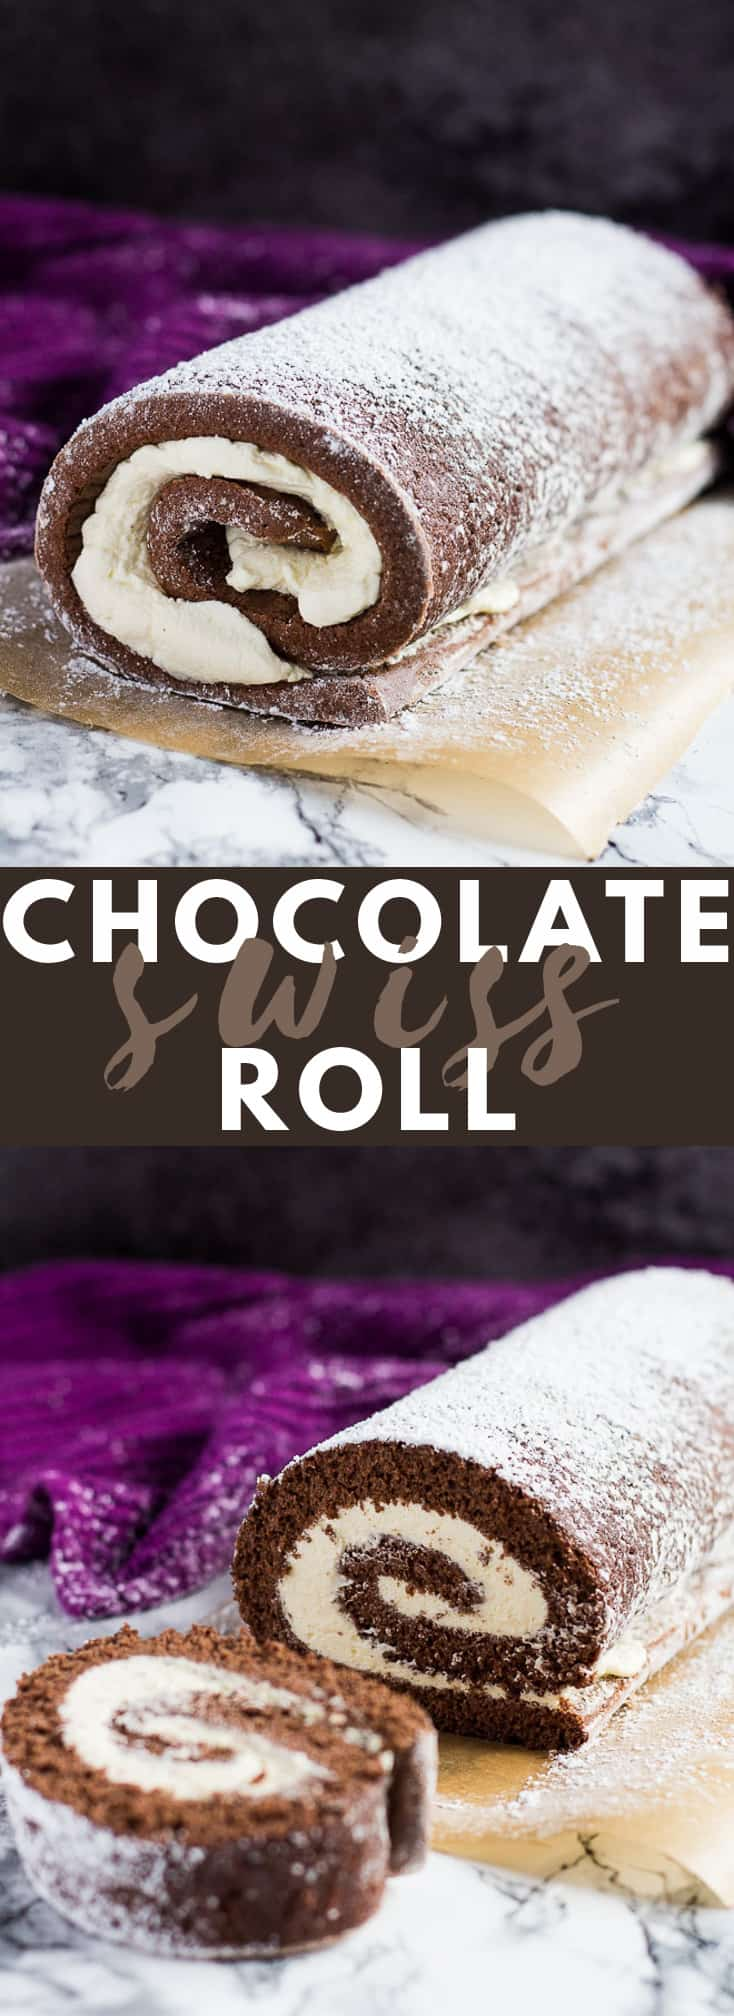 Chocolate Swiss Roll – Deliciously moist and fluffy cake filled with a thick layer of vanilla whipped cream and dusted with icing sugar!